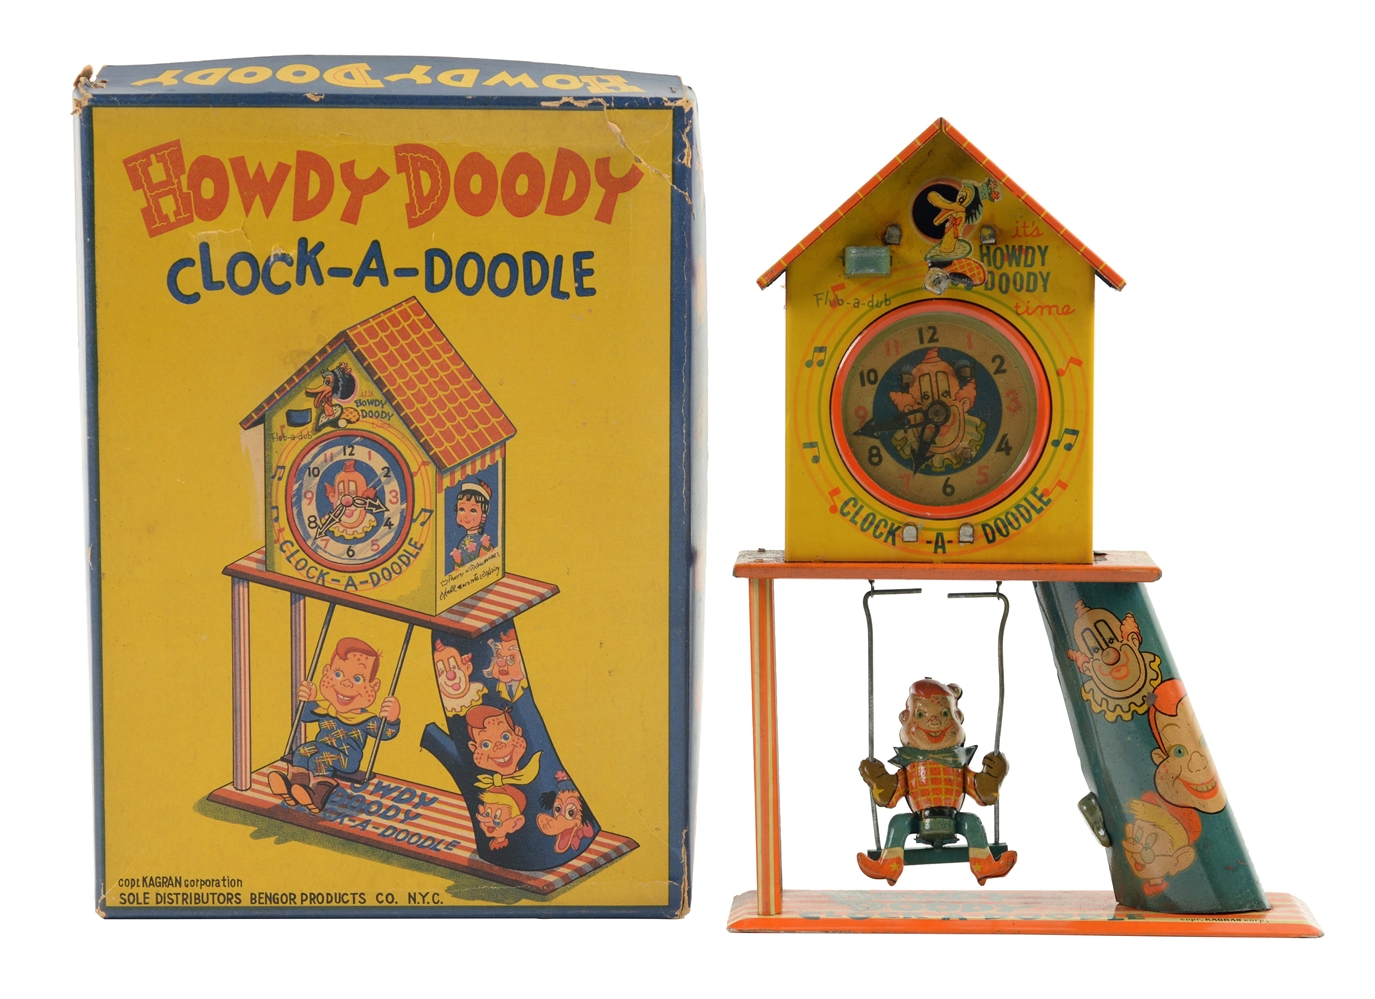 Bandai Tin Litho Wind Up Howdy Doody Clock-A-Doodle.